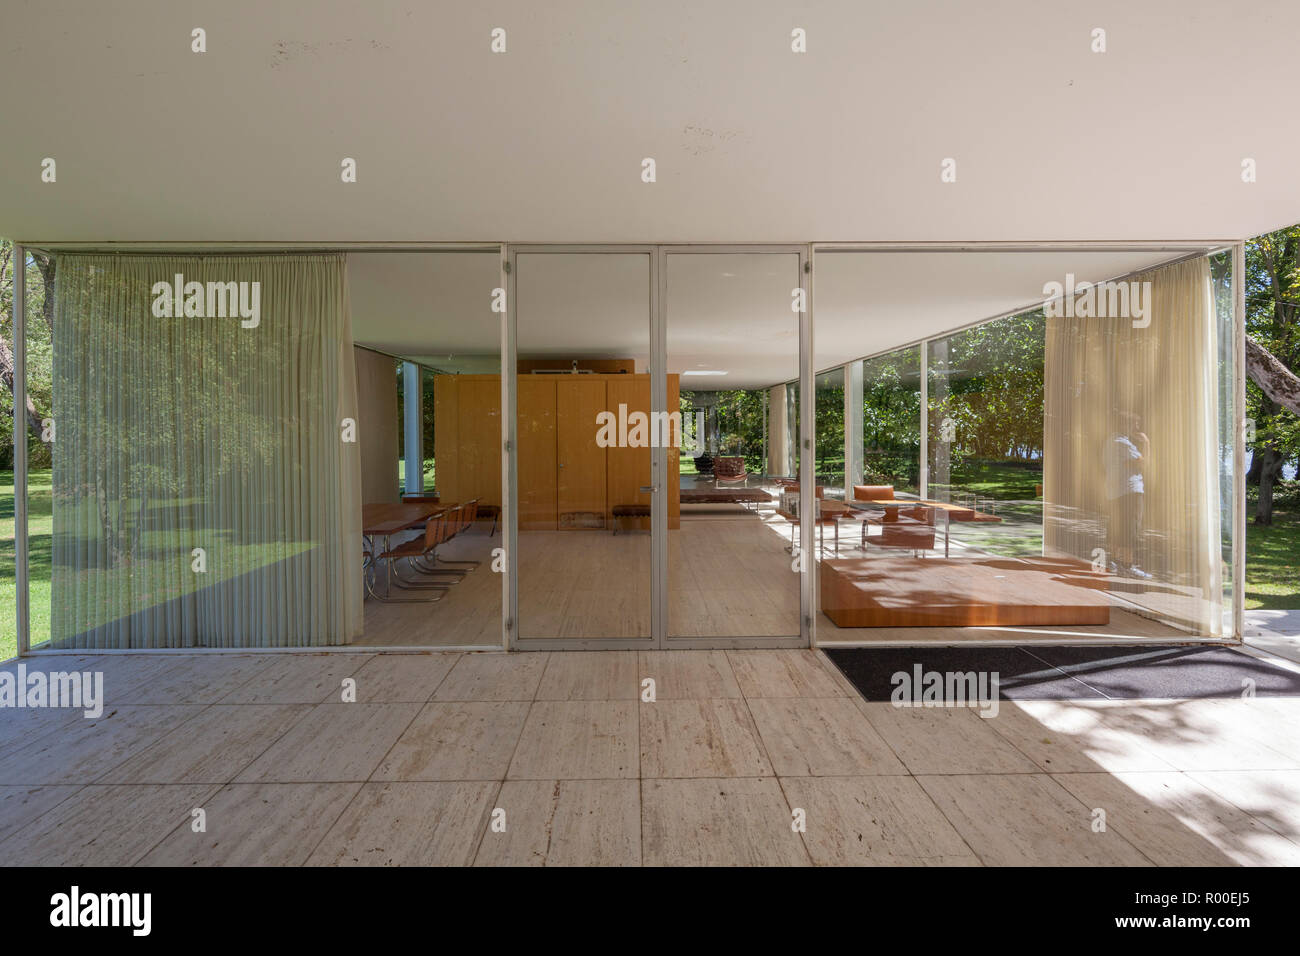 View towards interior of farnsworth house by architect ludwig mies van der rohe 1951 plano illinois usa